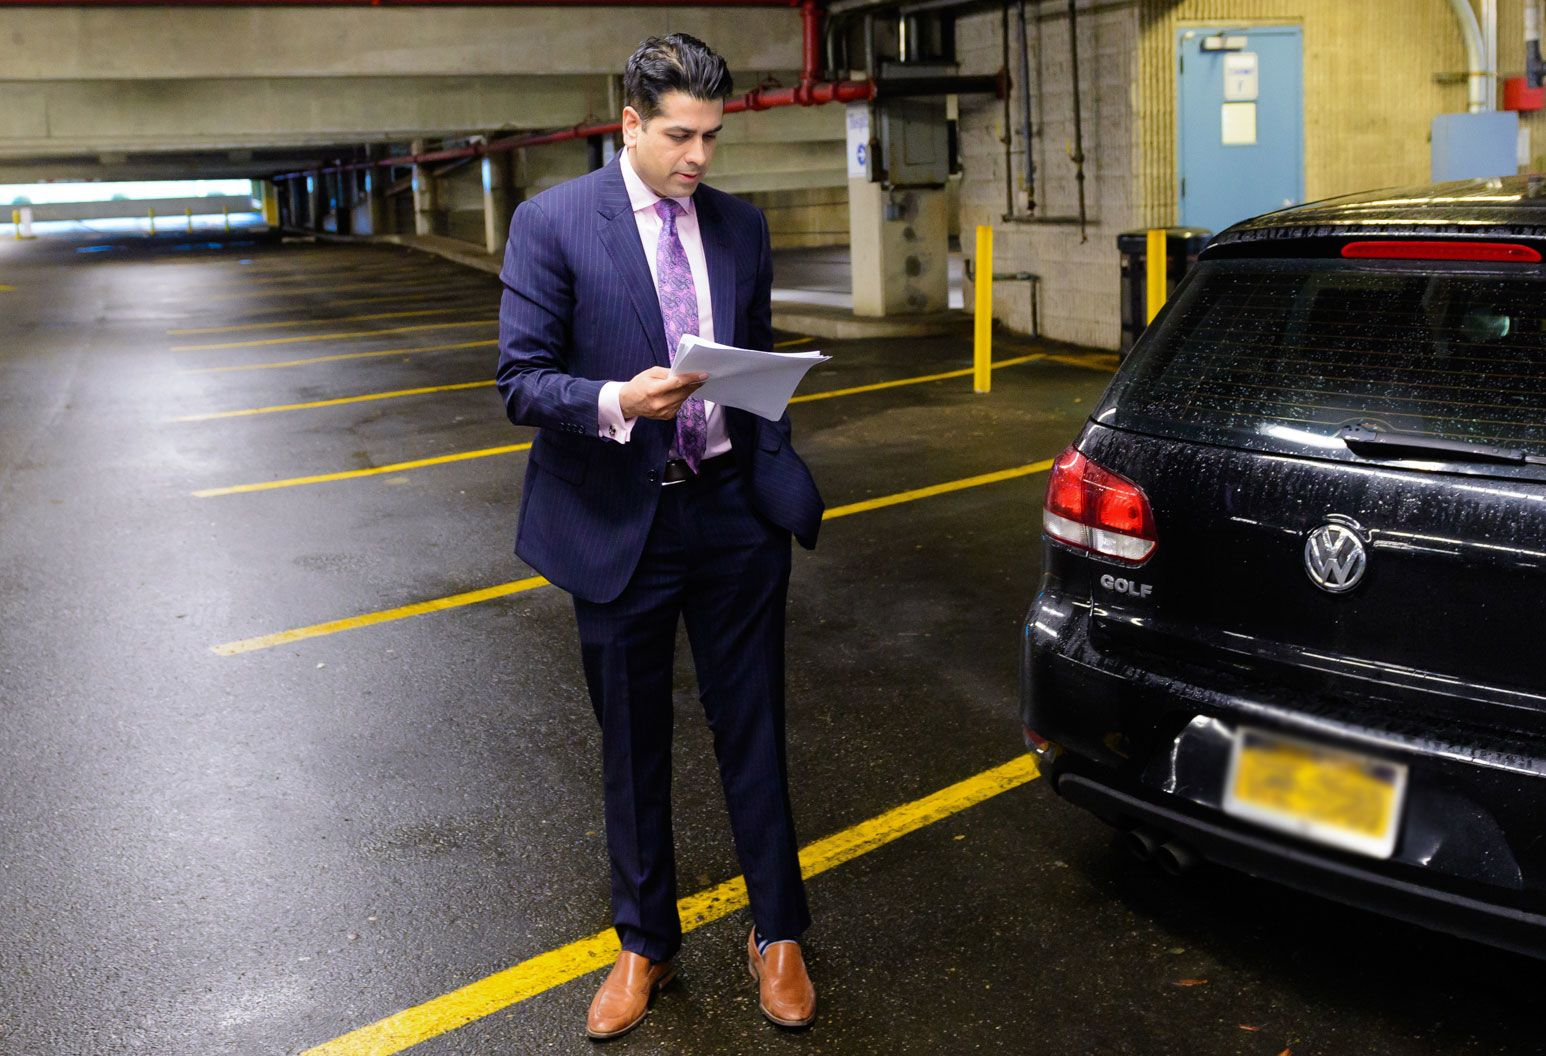 Man in striped blue shirt, pink shirt, and purple graphic tie stands next to his car in an empty parking garage and reviews papers in his hand.